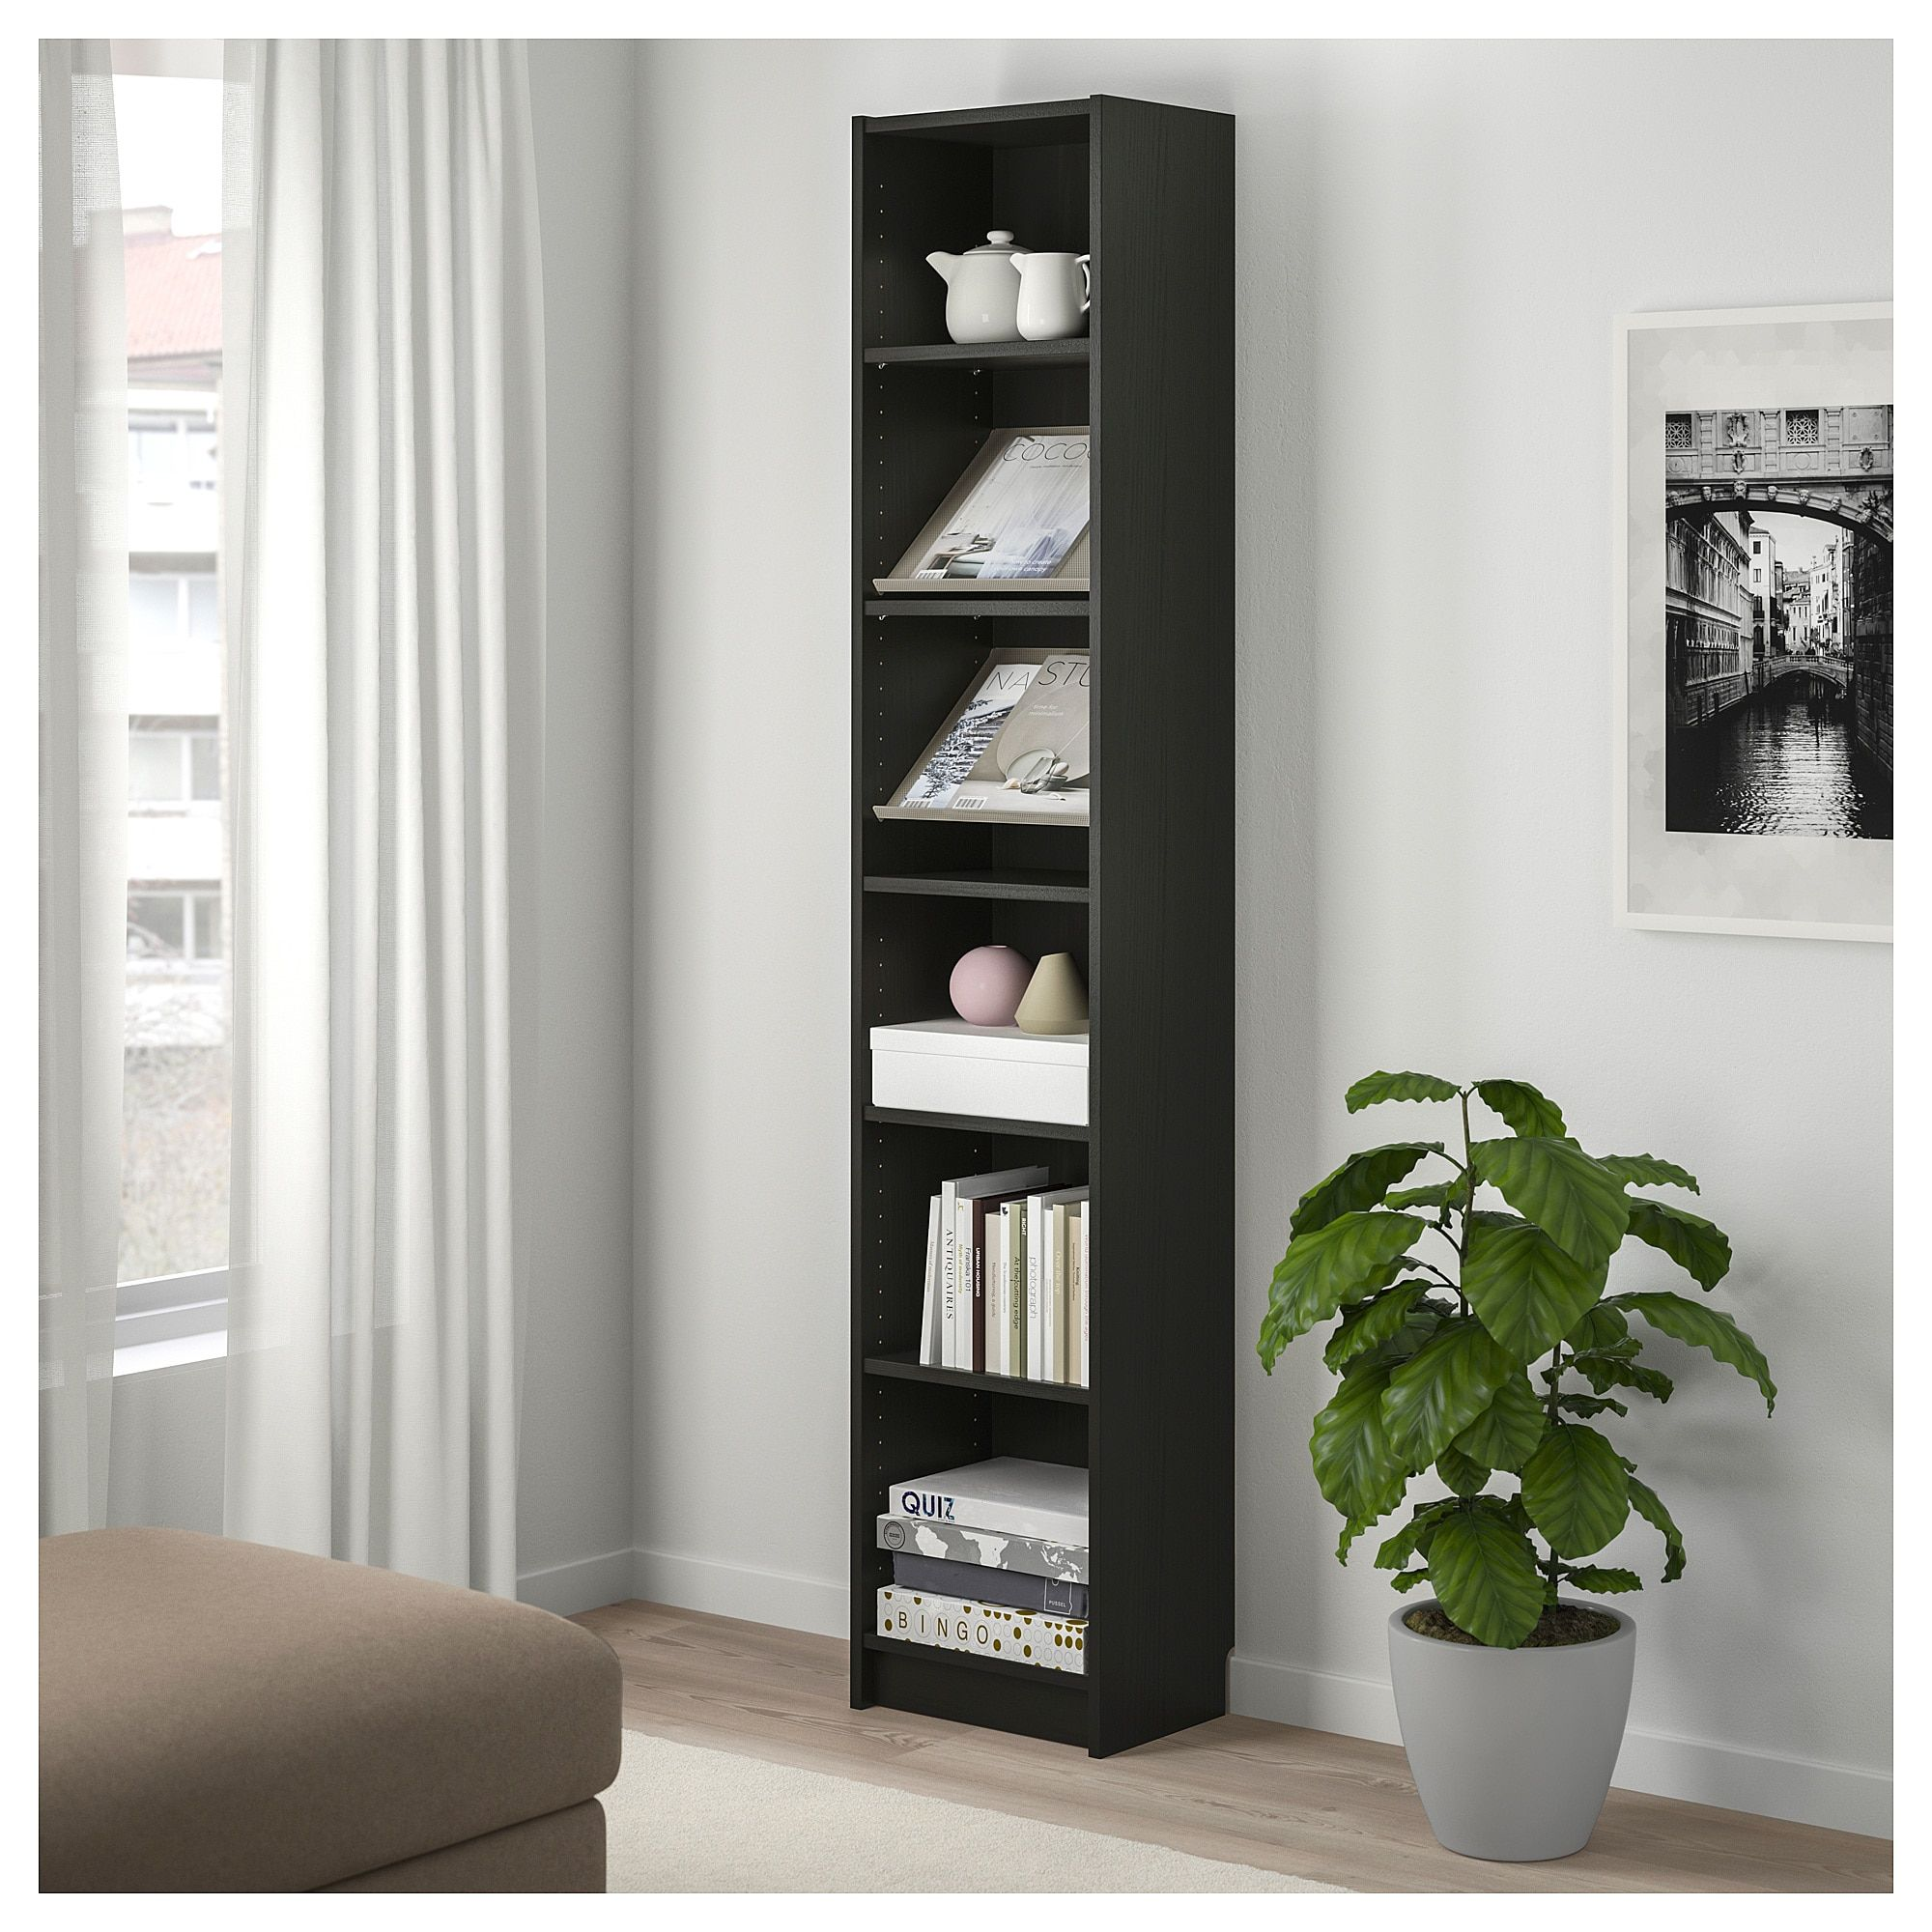 Billy Bottna Bookcase With Display Shelf Black Brown Beige Ikea Display Shelves Shelves Bookcase